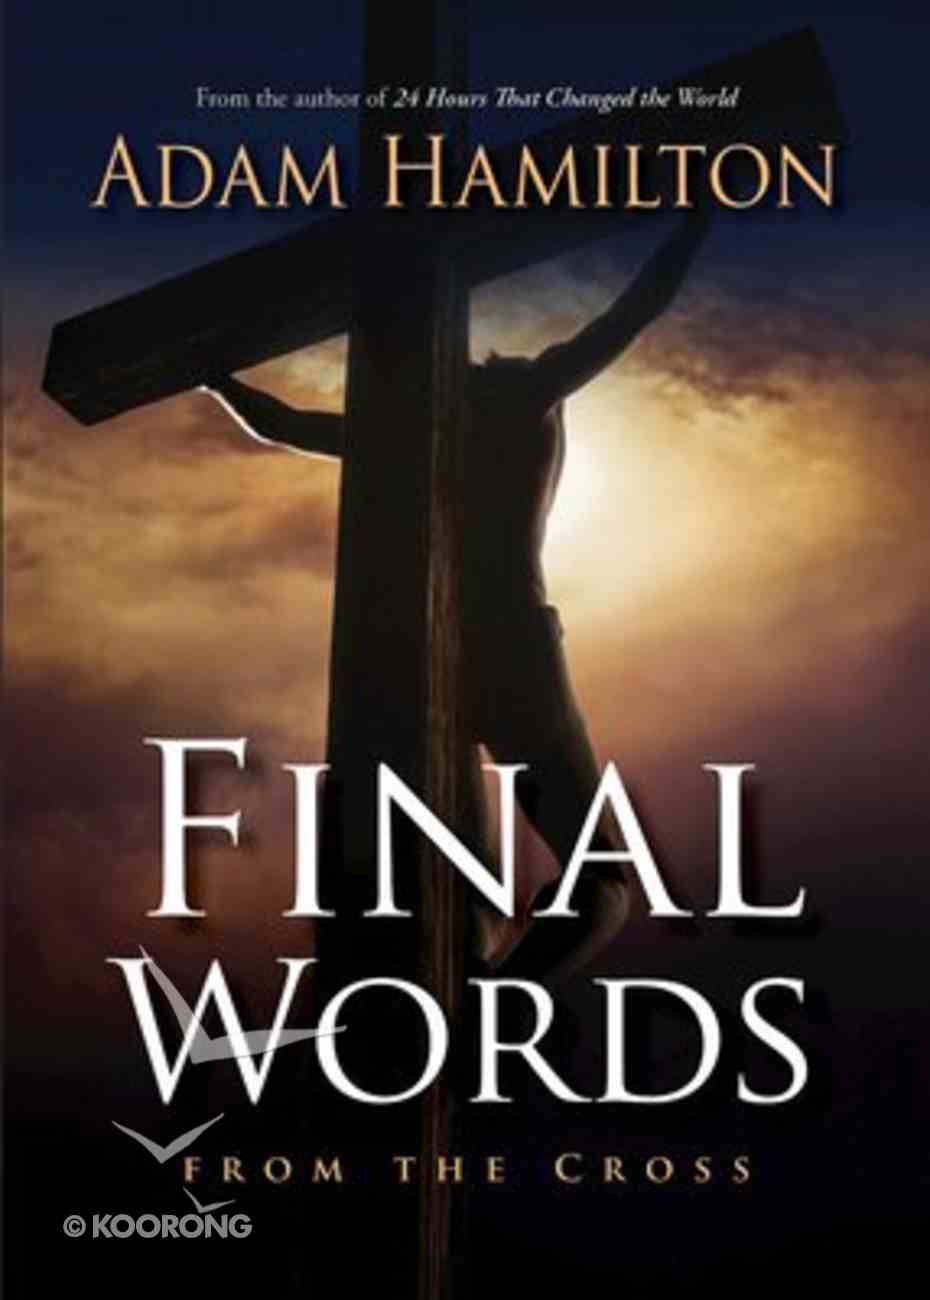 Final Words From the Cross Paperback